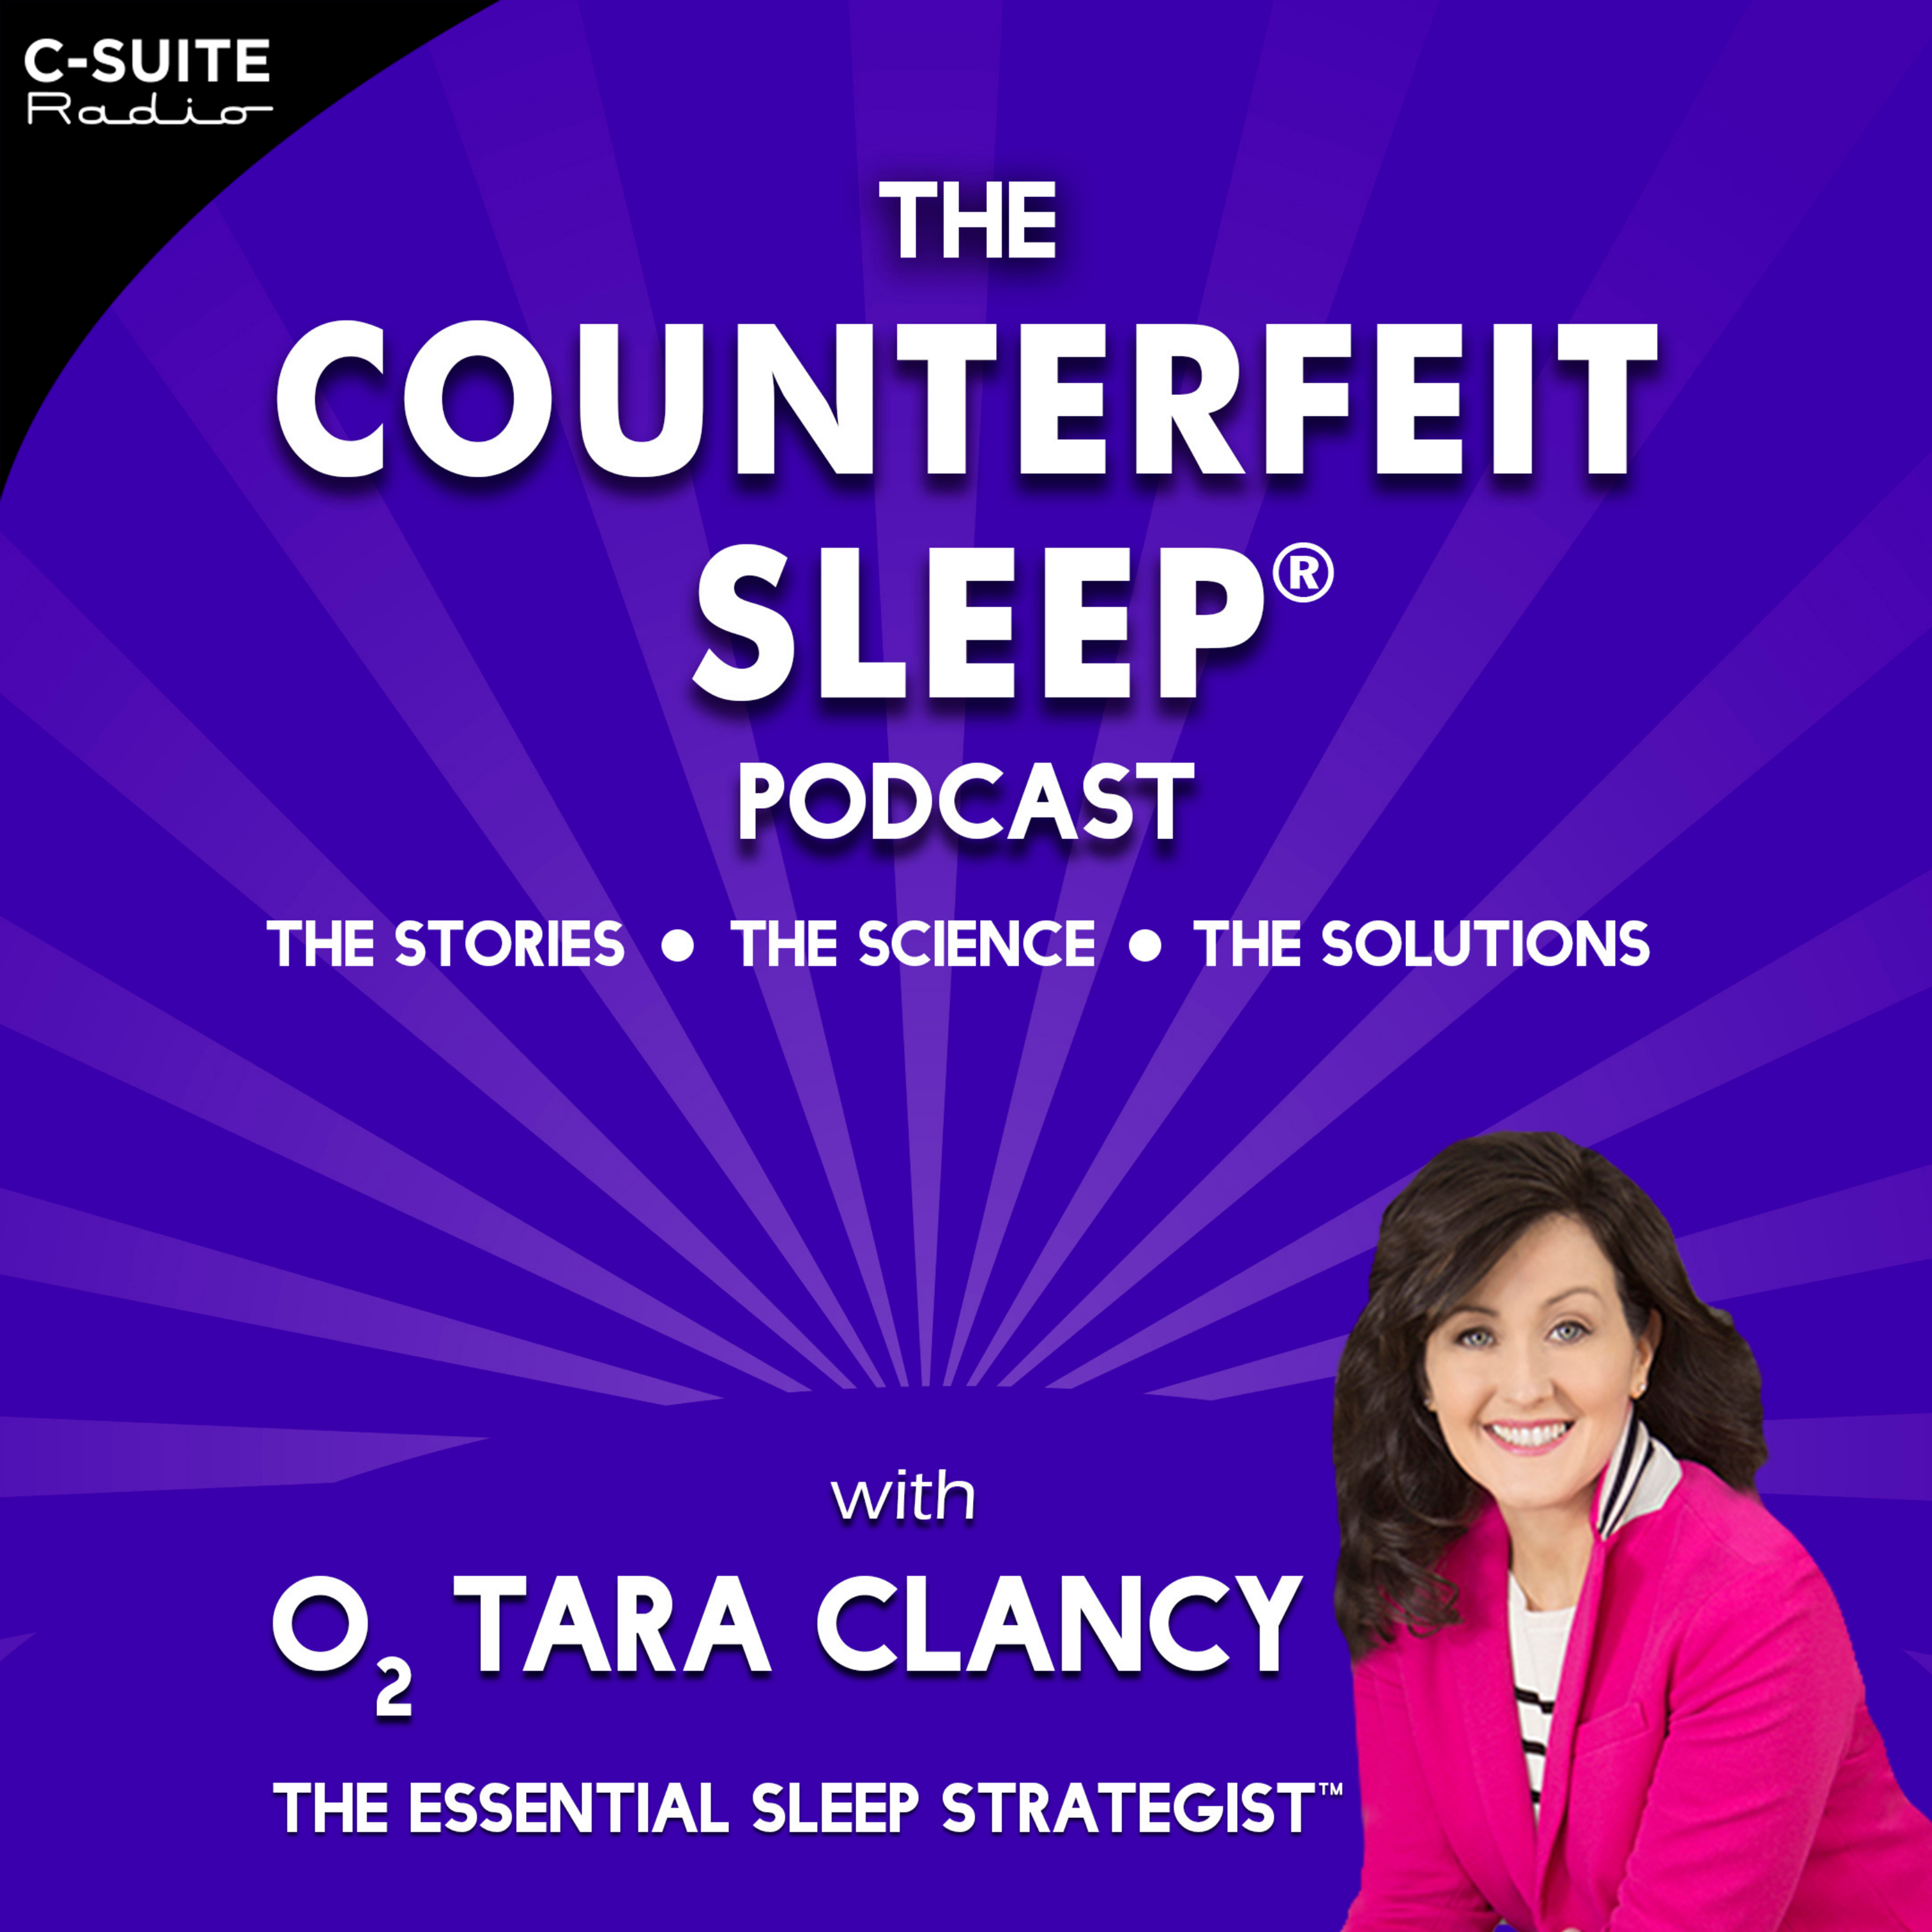 THE COUNTERFEIT SLEEP® PODCAST